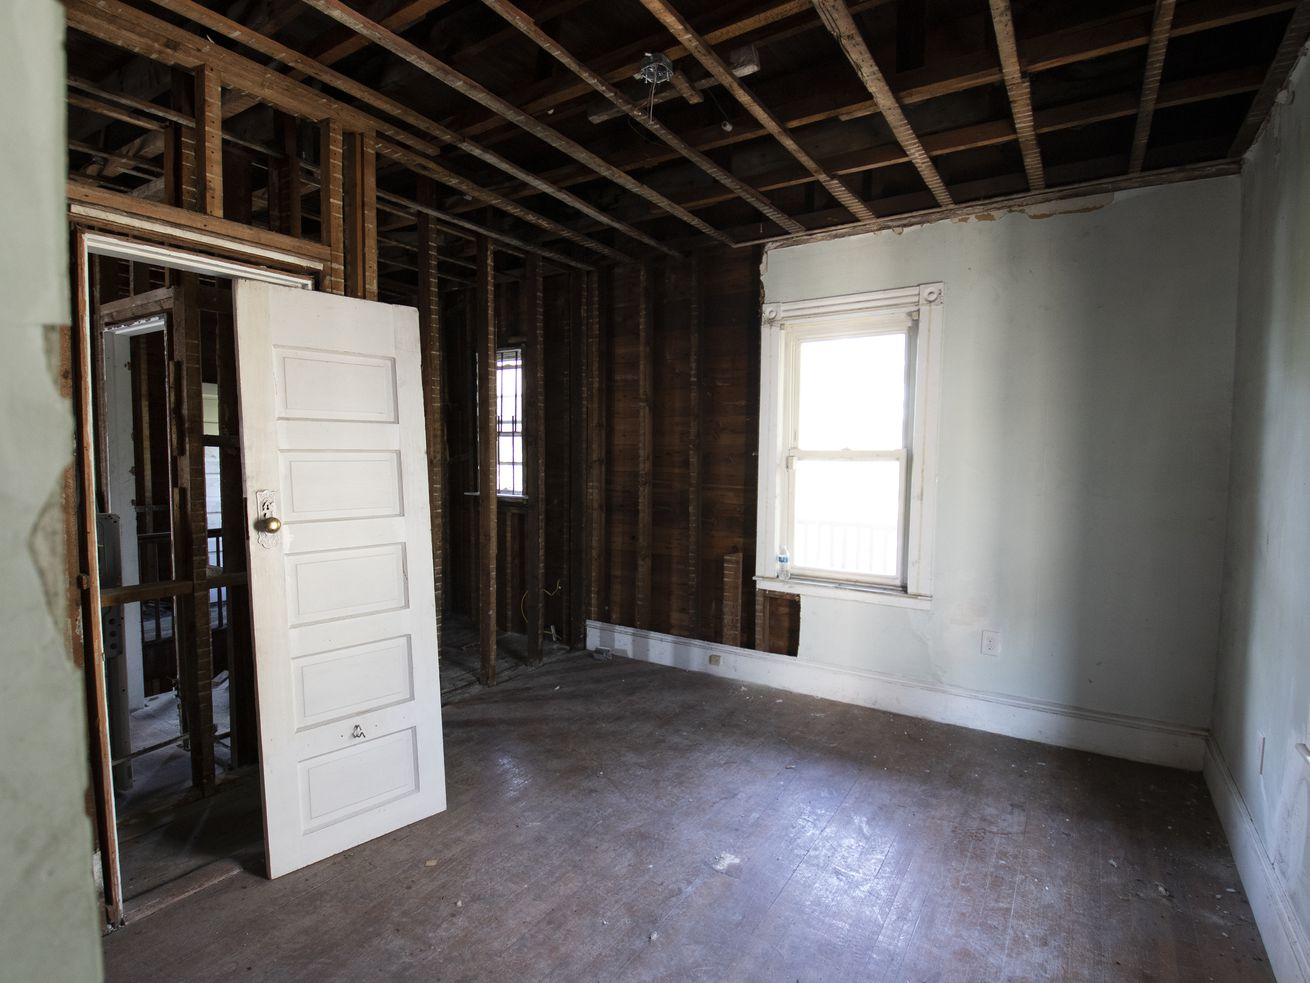 The interior of a house featured on This Old House  Season 42 that sustained fire damage. The left side of the room has all of the drywall removed and a door off of its hinges.